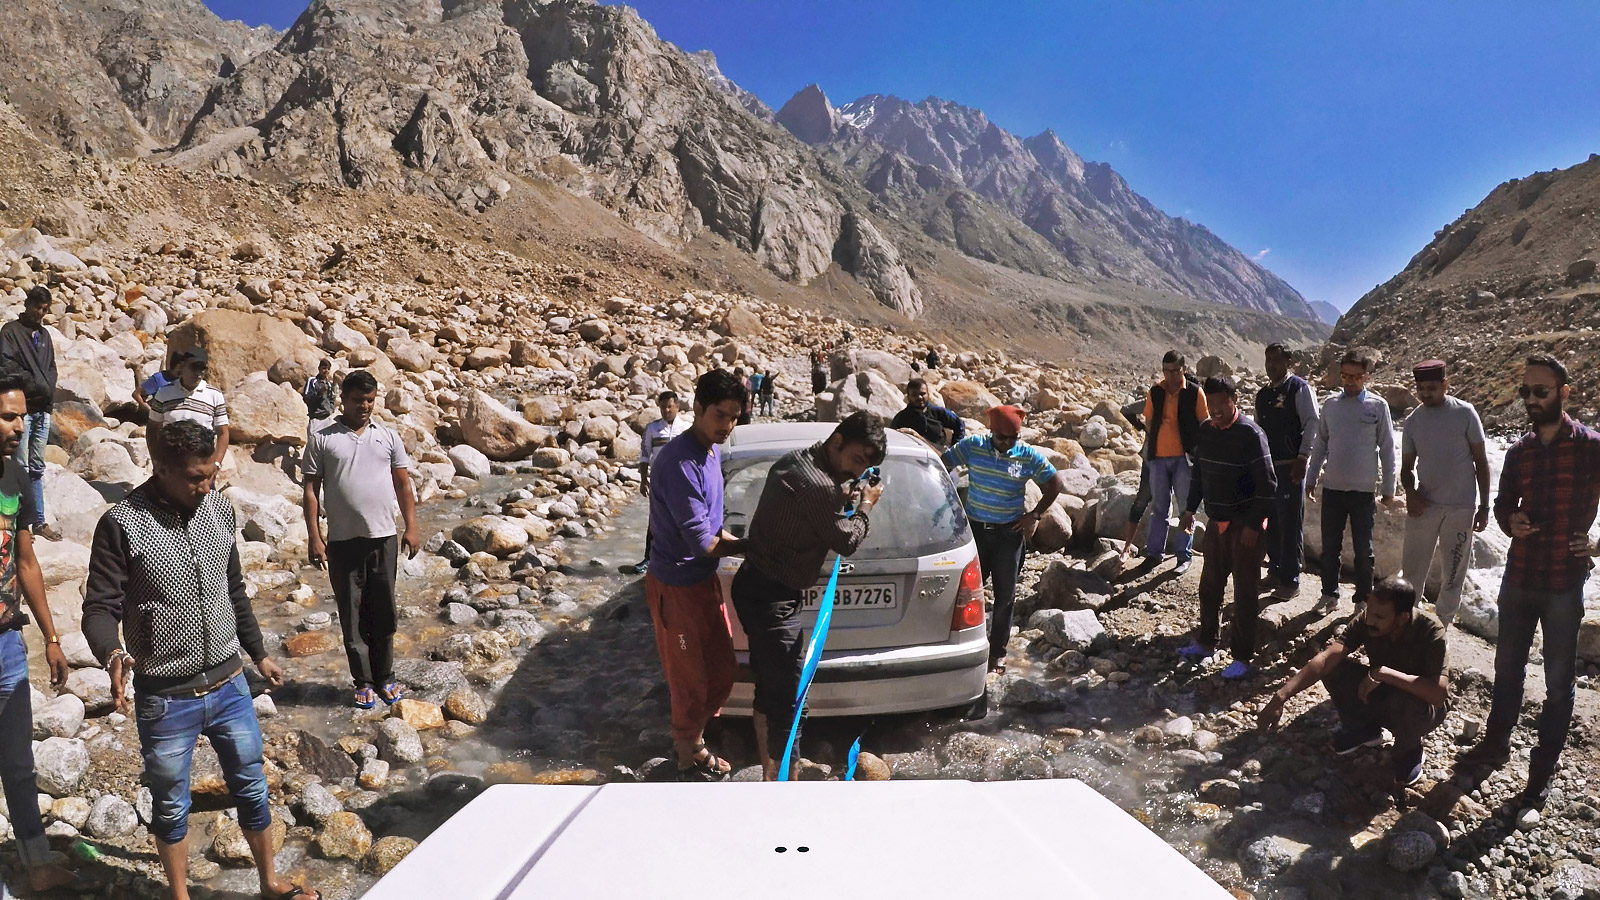 Himalayan Roads by Qurost Creative Solutions